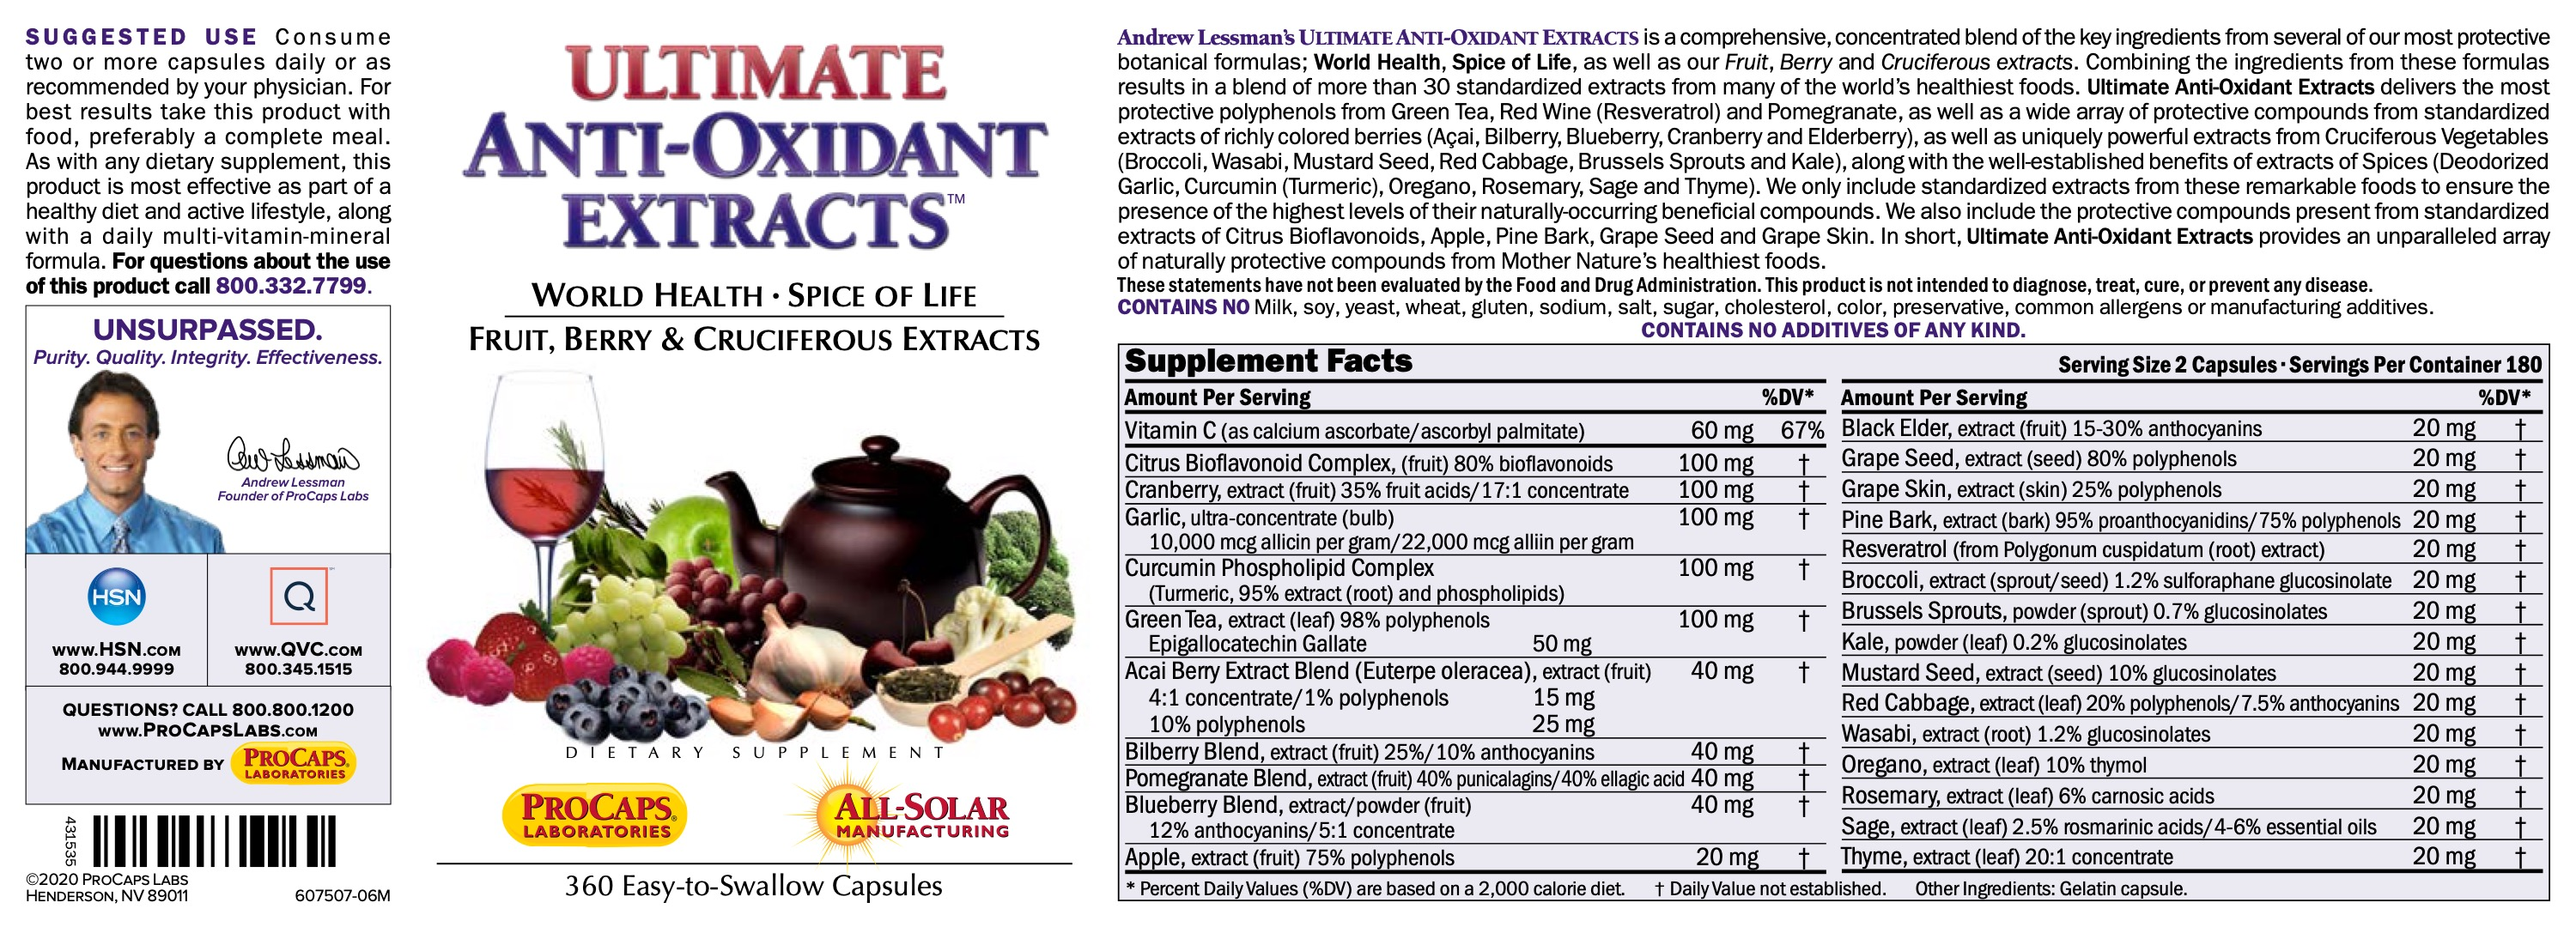 Ultimate-Anti-Oxidant-Extracts